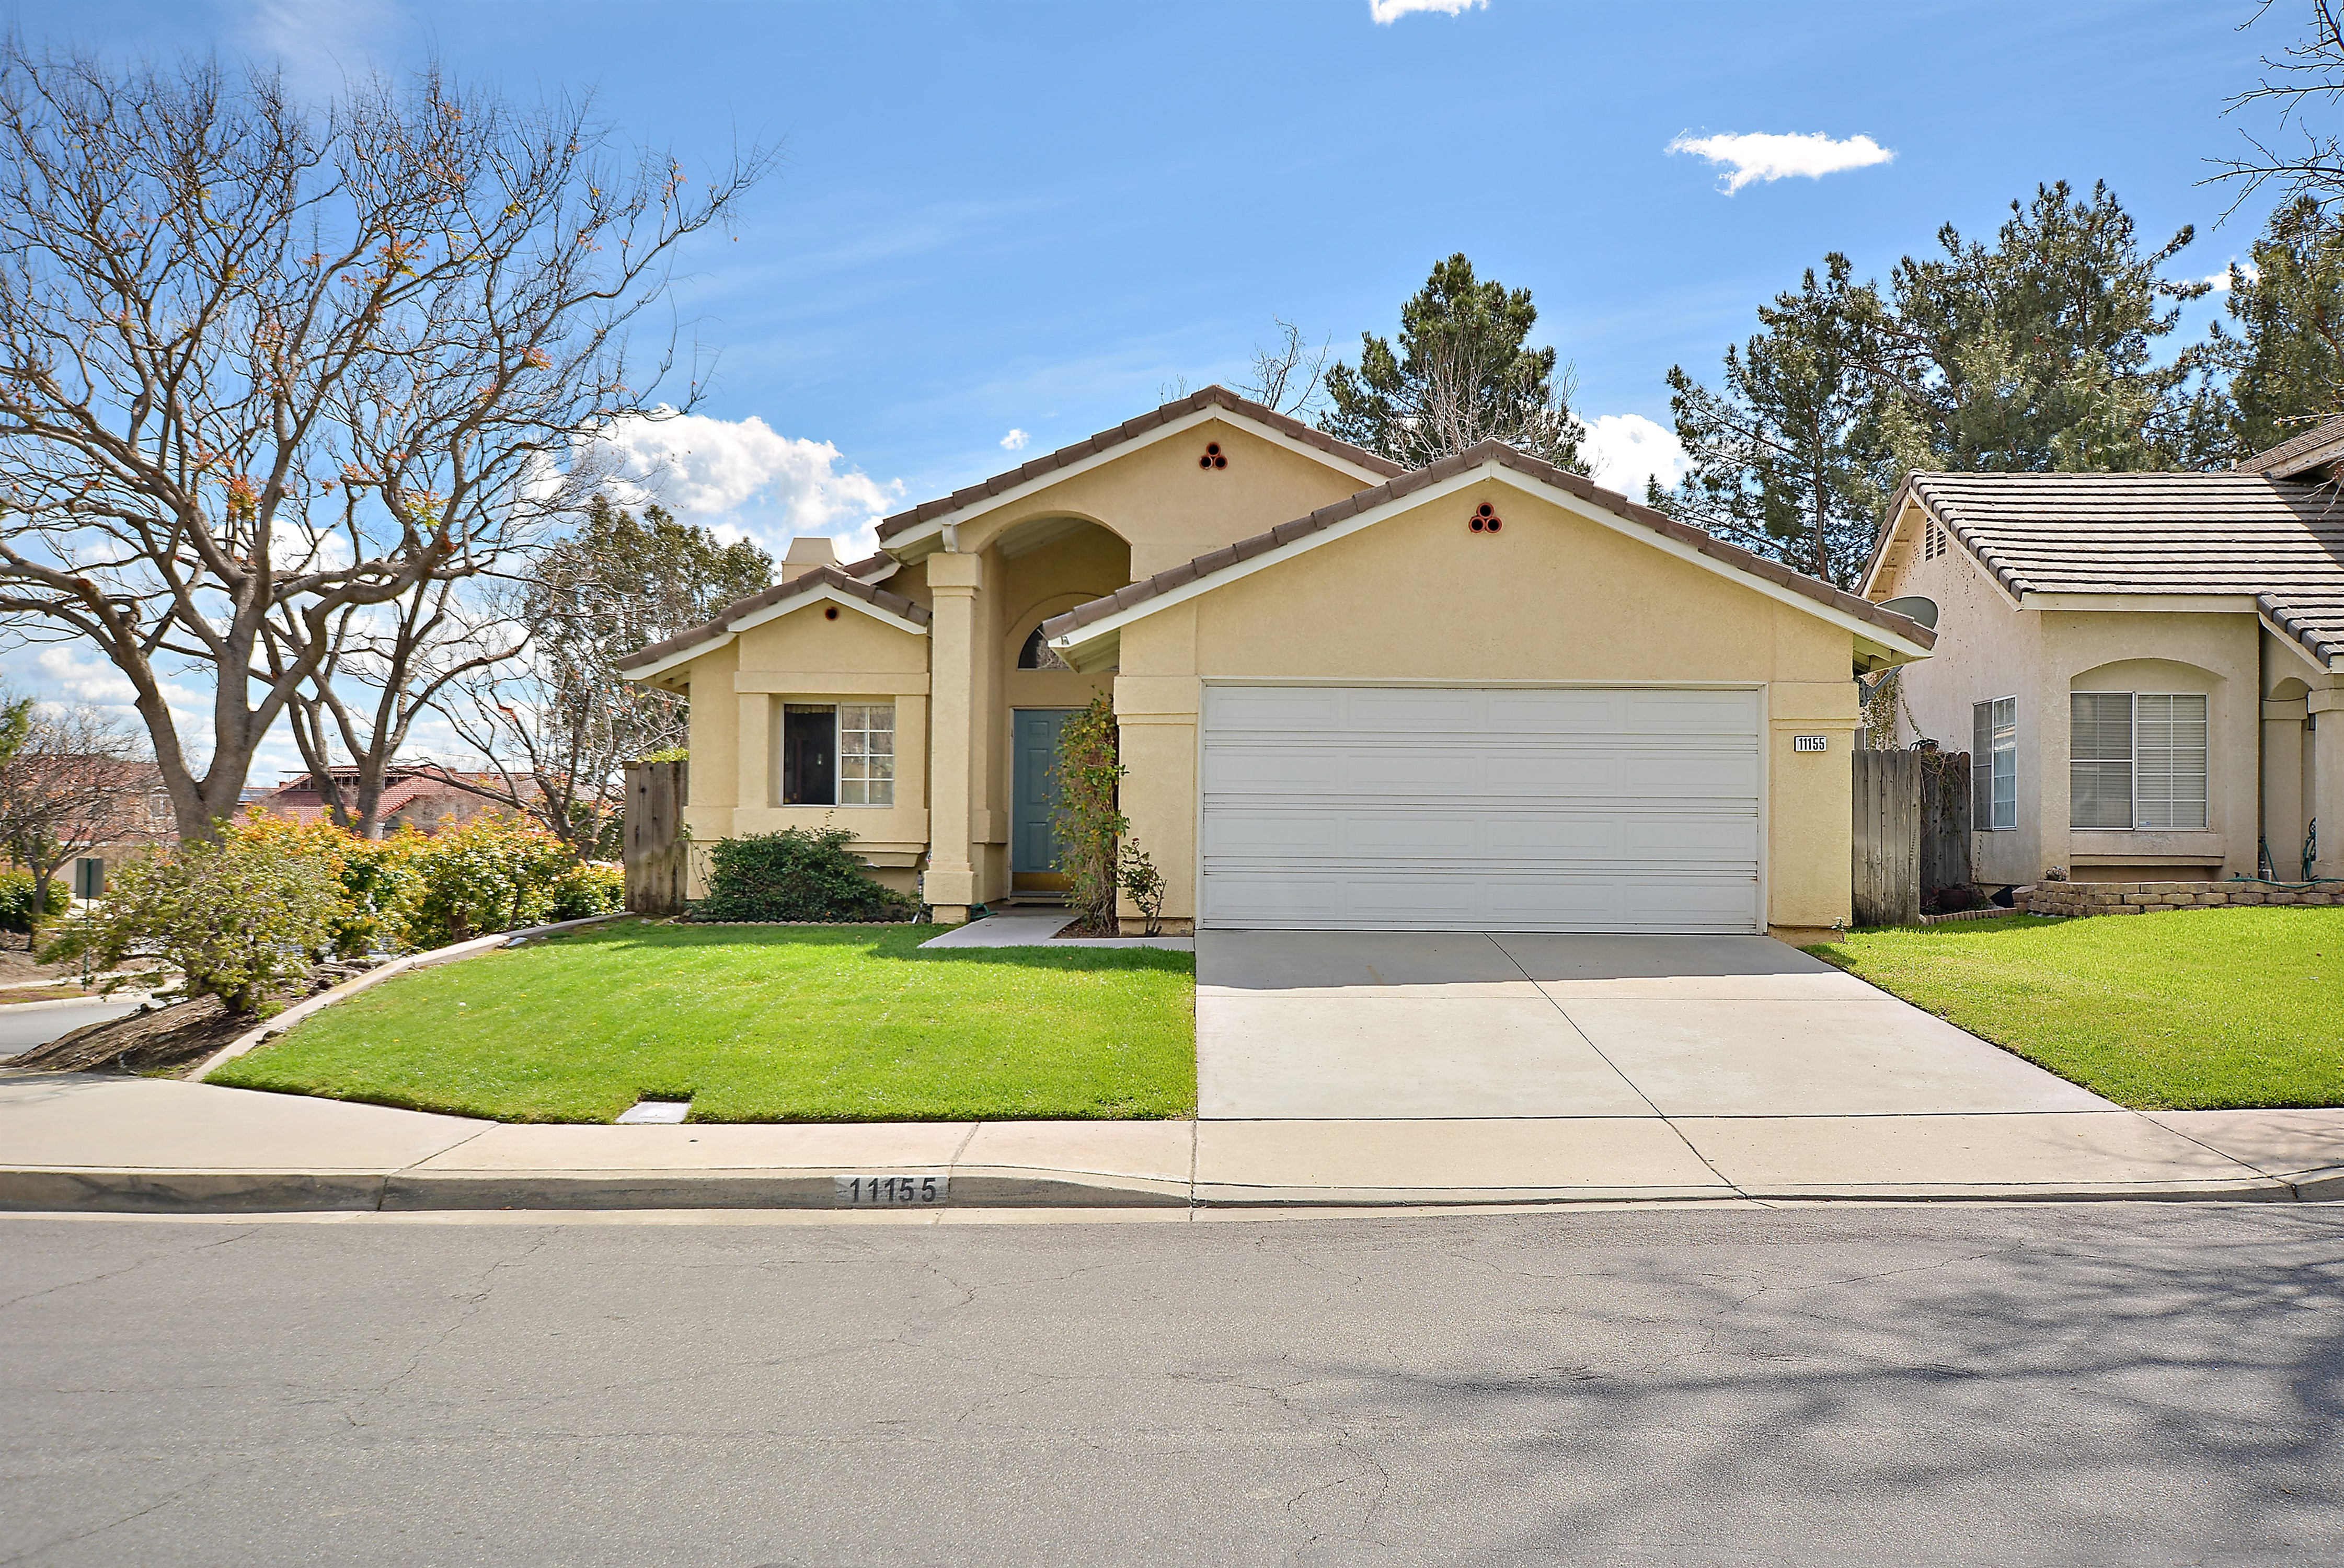 Great Single Story Home Just Hit The Market In Rancho Cucamonga!! This  Beauty Features 3 Bedrooms, 2 Bathrooms And 1,029 Sq Ft Of Living Space.